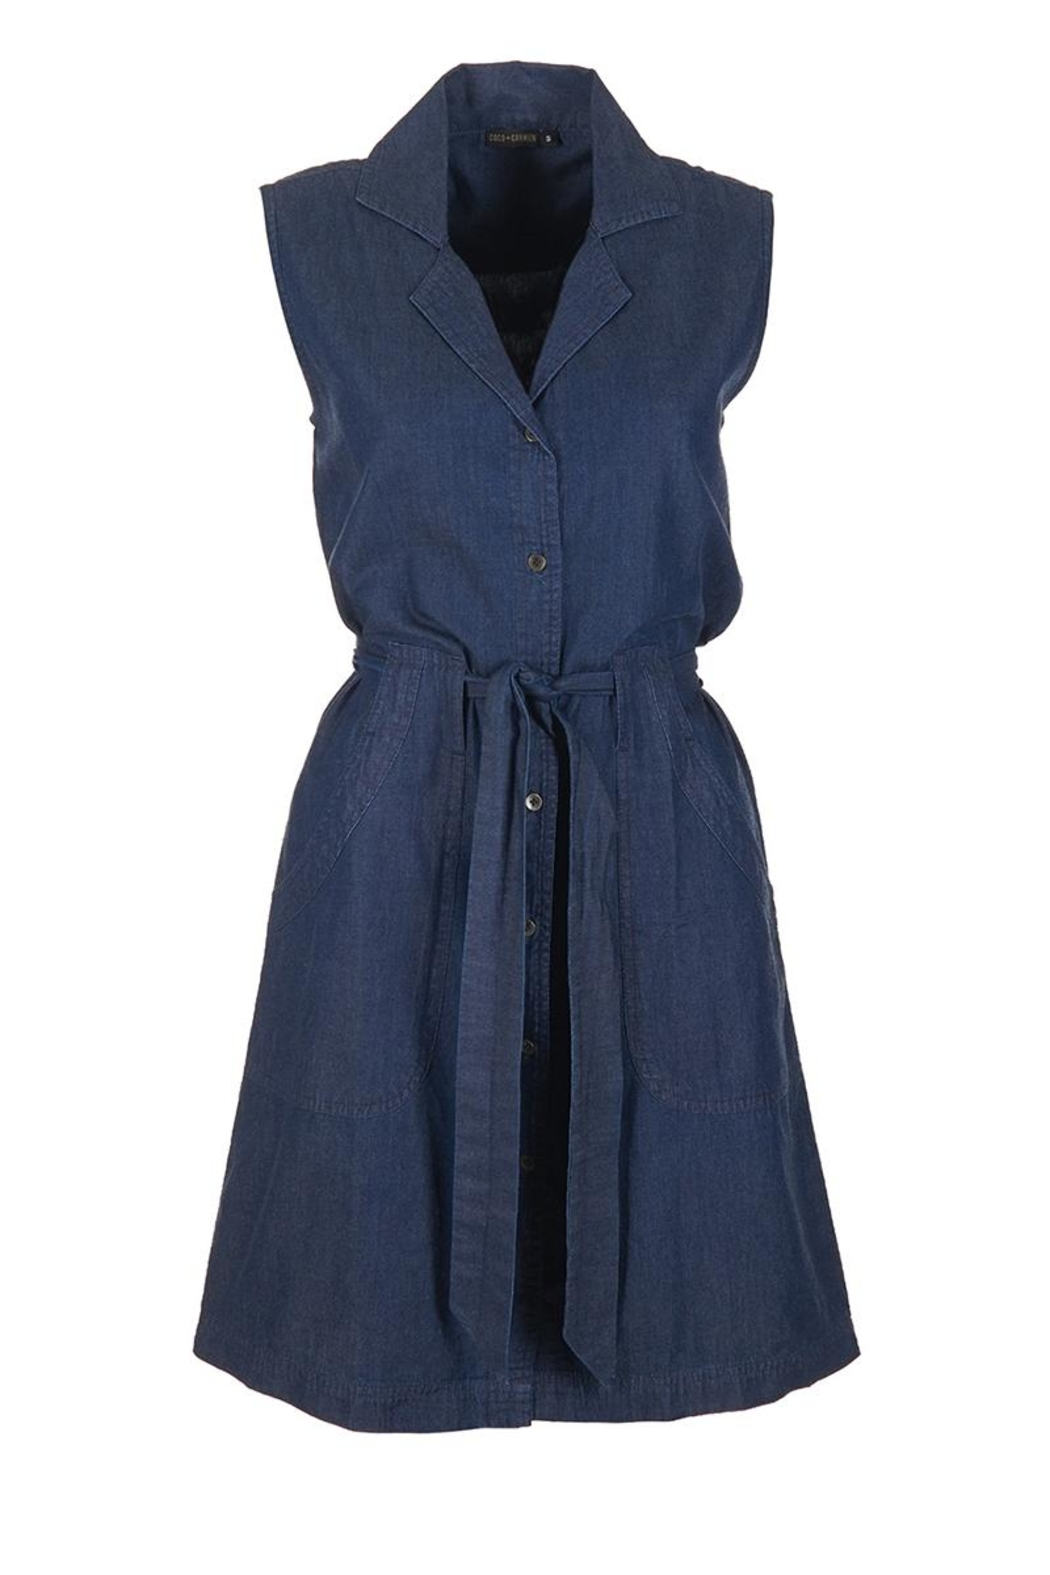 Coco + Carmen Valencia Denim Dress - Front Full Image